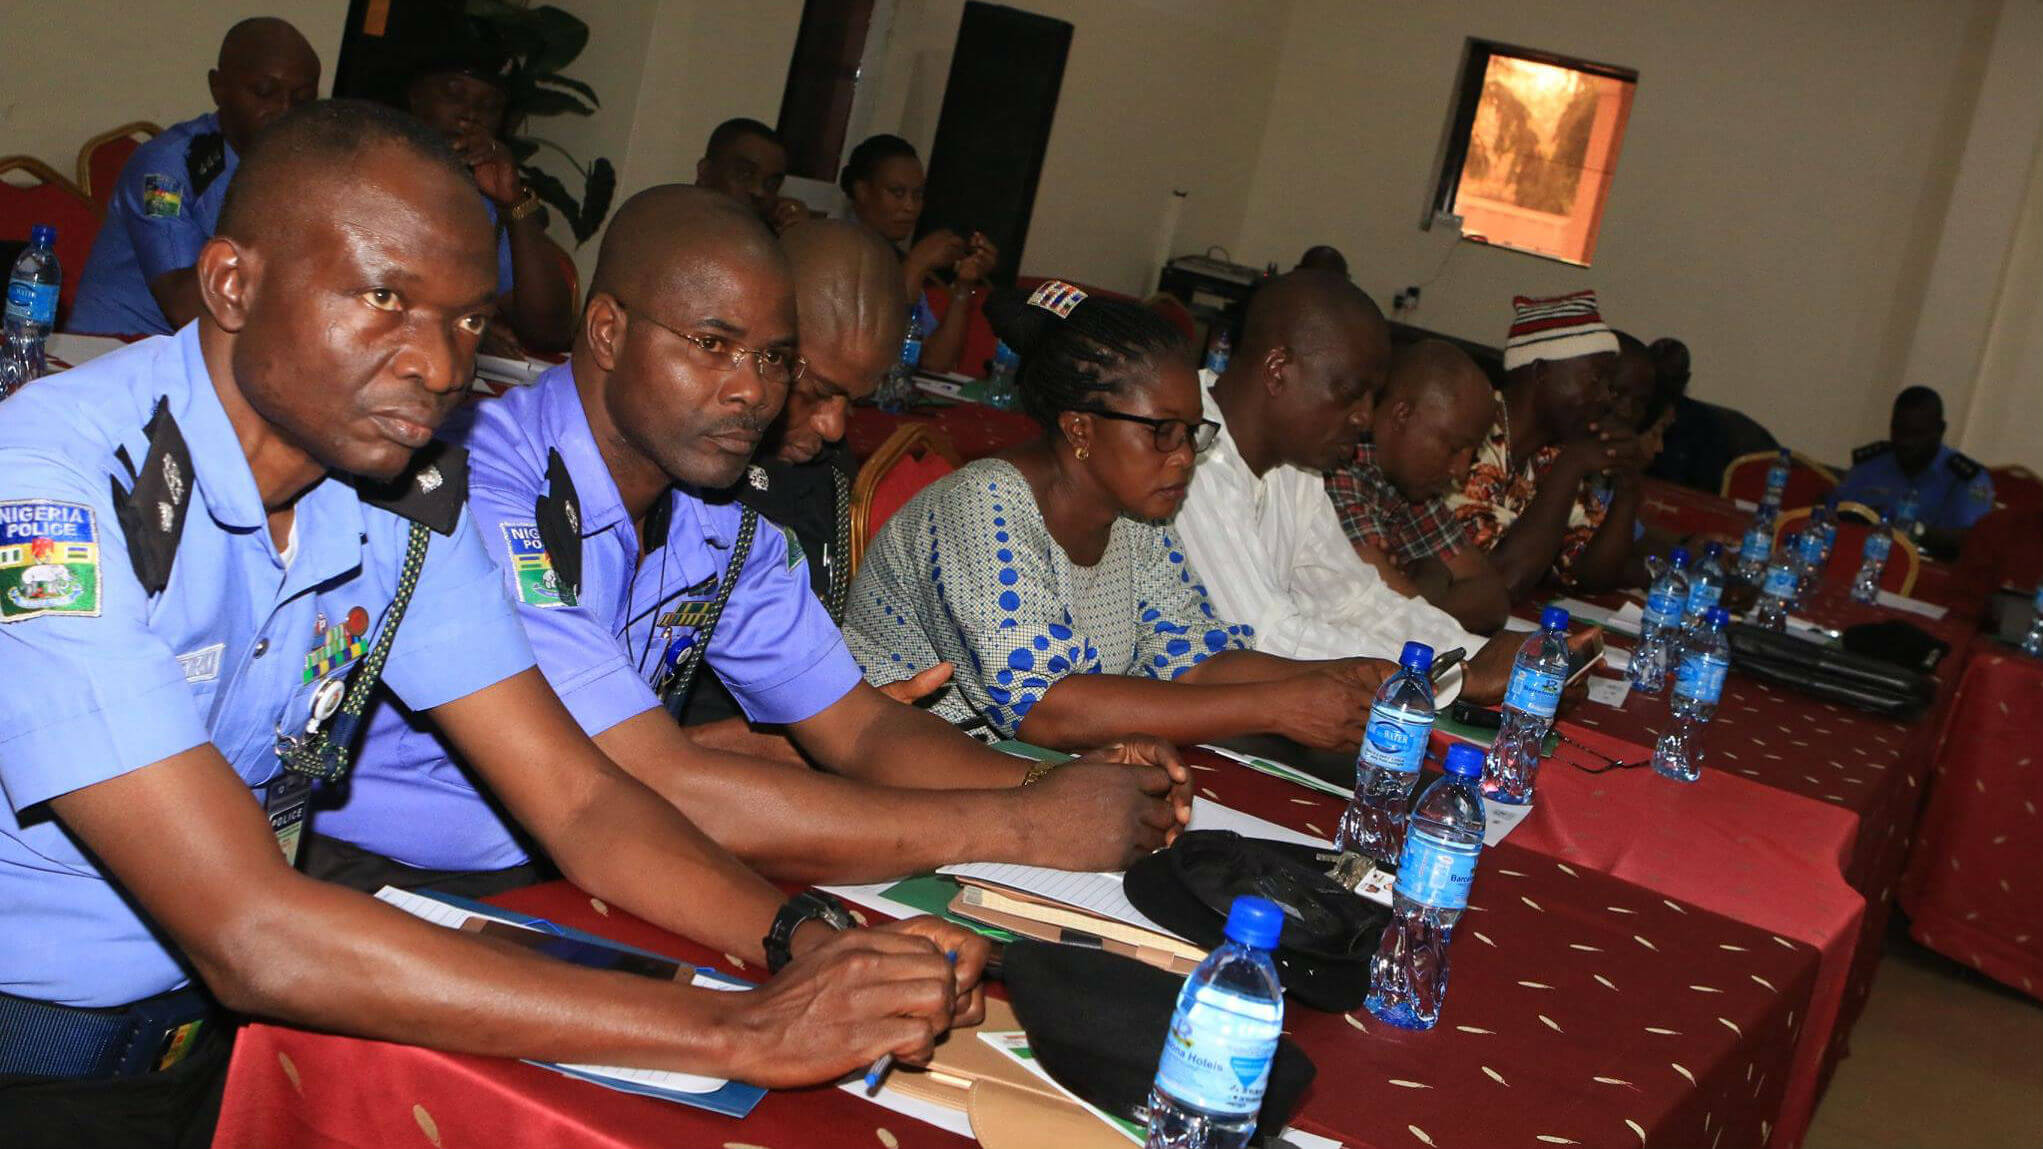 Nigerian police preparing for good relations with journalists during elections